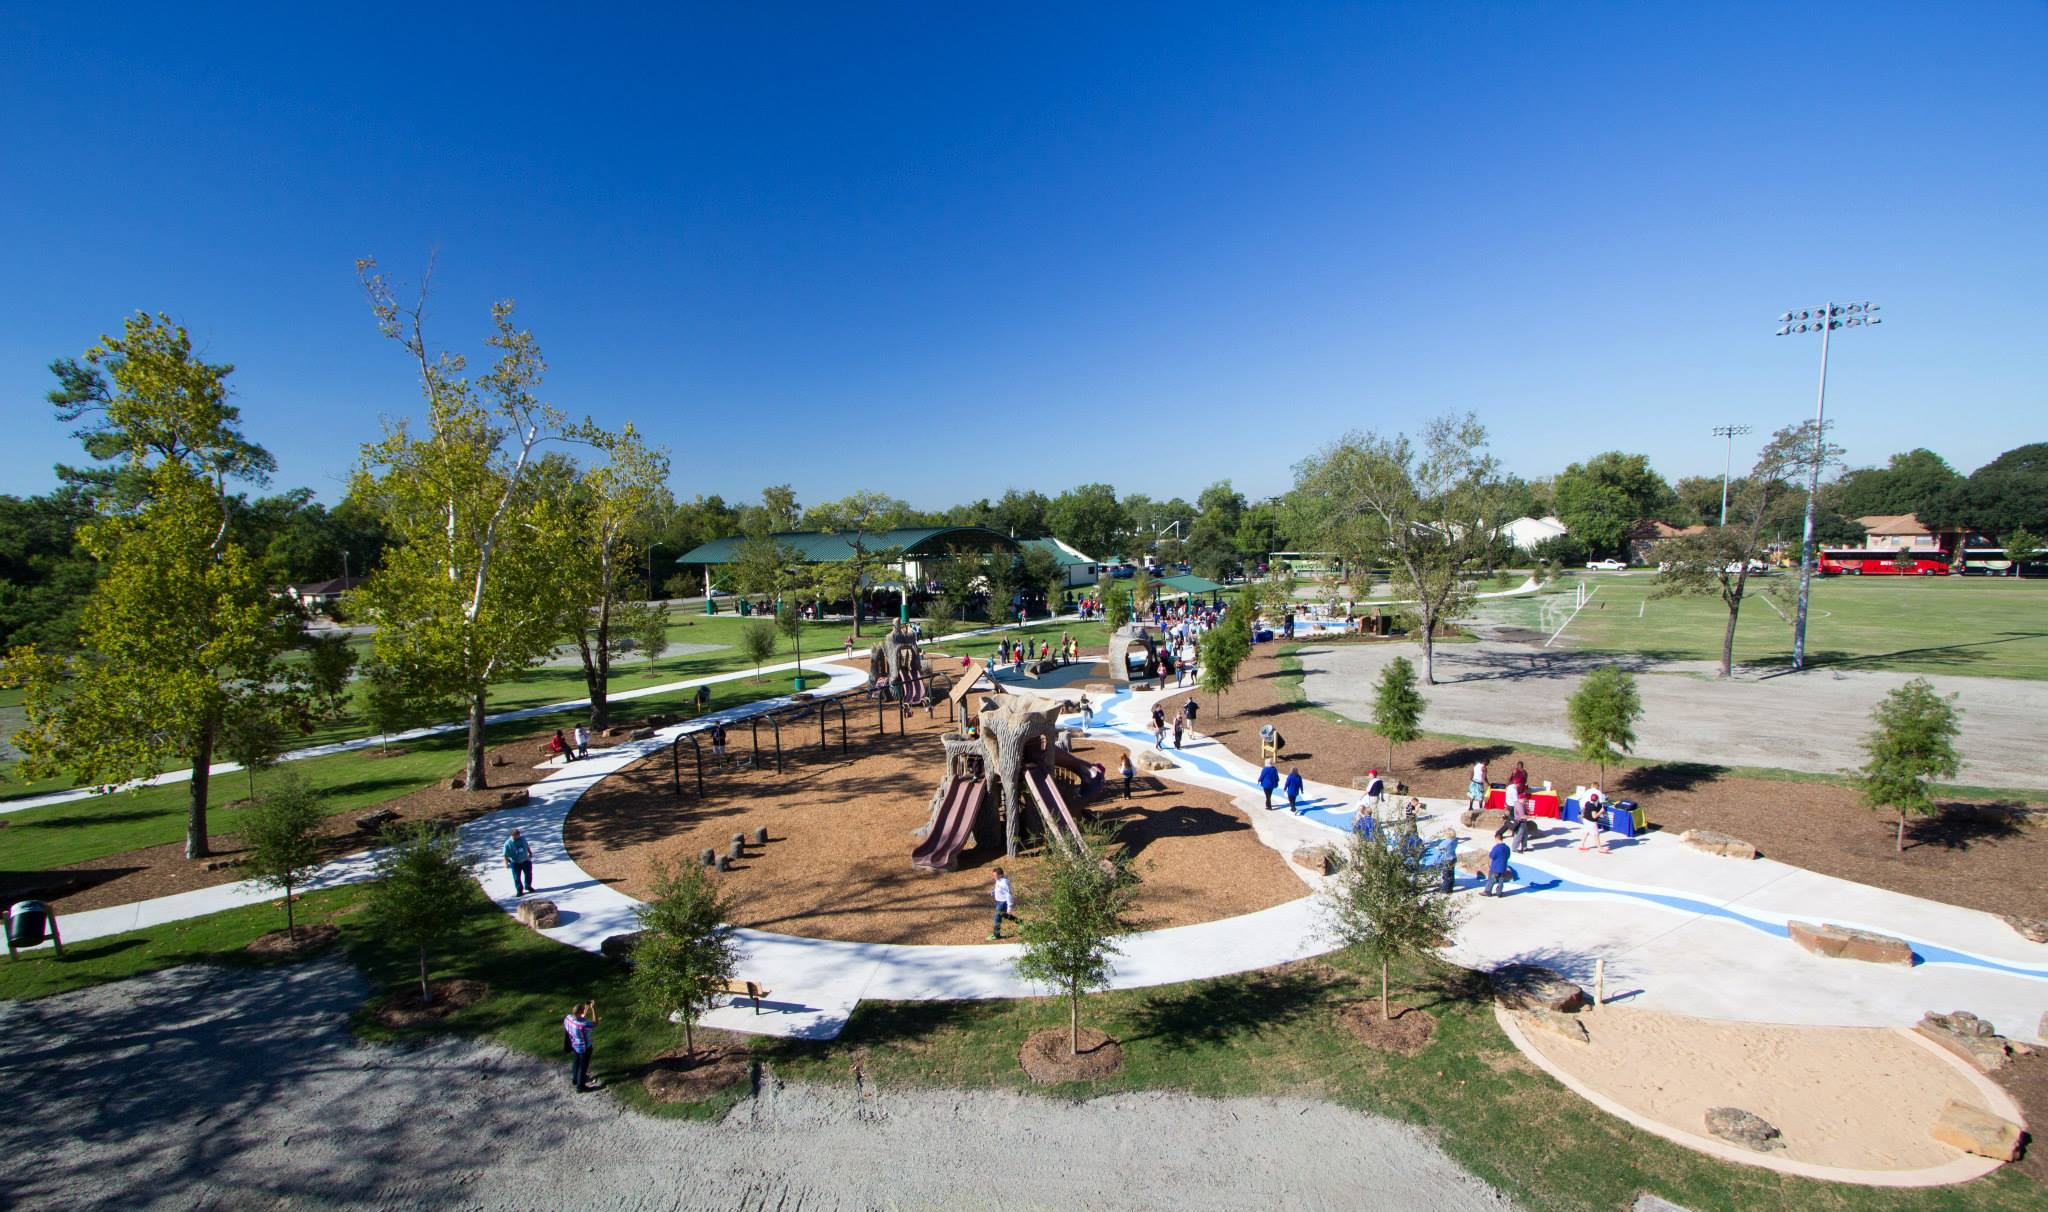 - Mayor Annise Parker states, 'Parks in neighborhoods can be absolutely transformative. It's about children who can play, it's about adults who can get out and exercise, and it's about families doing things together.'